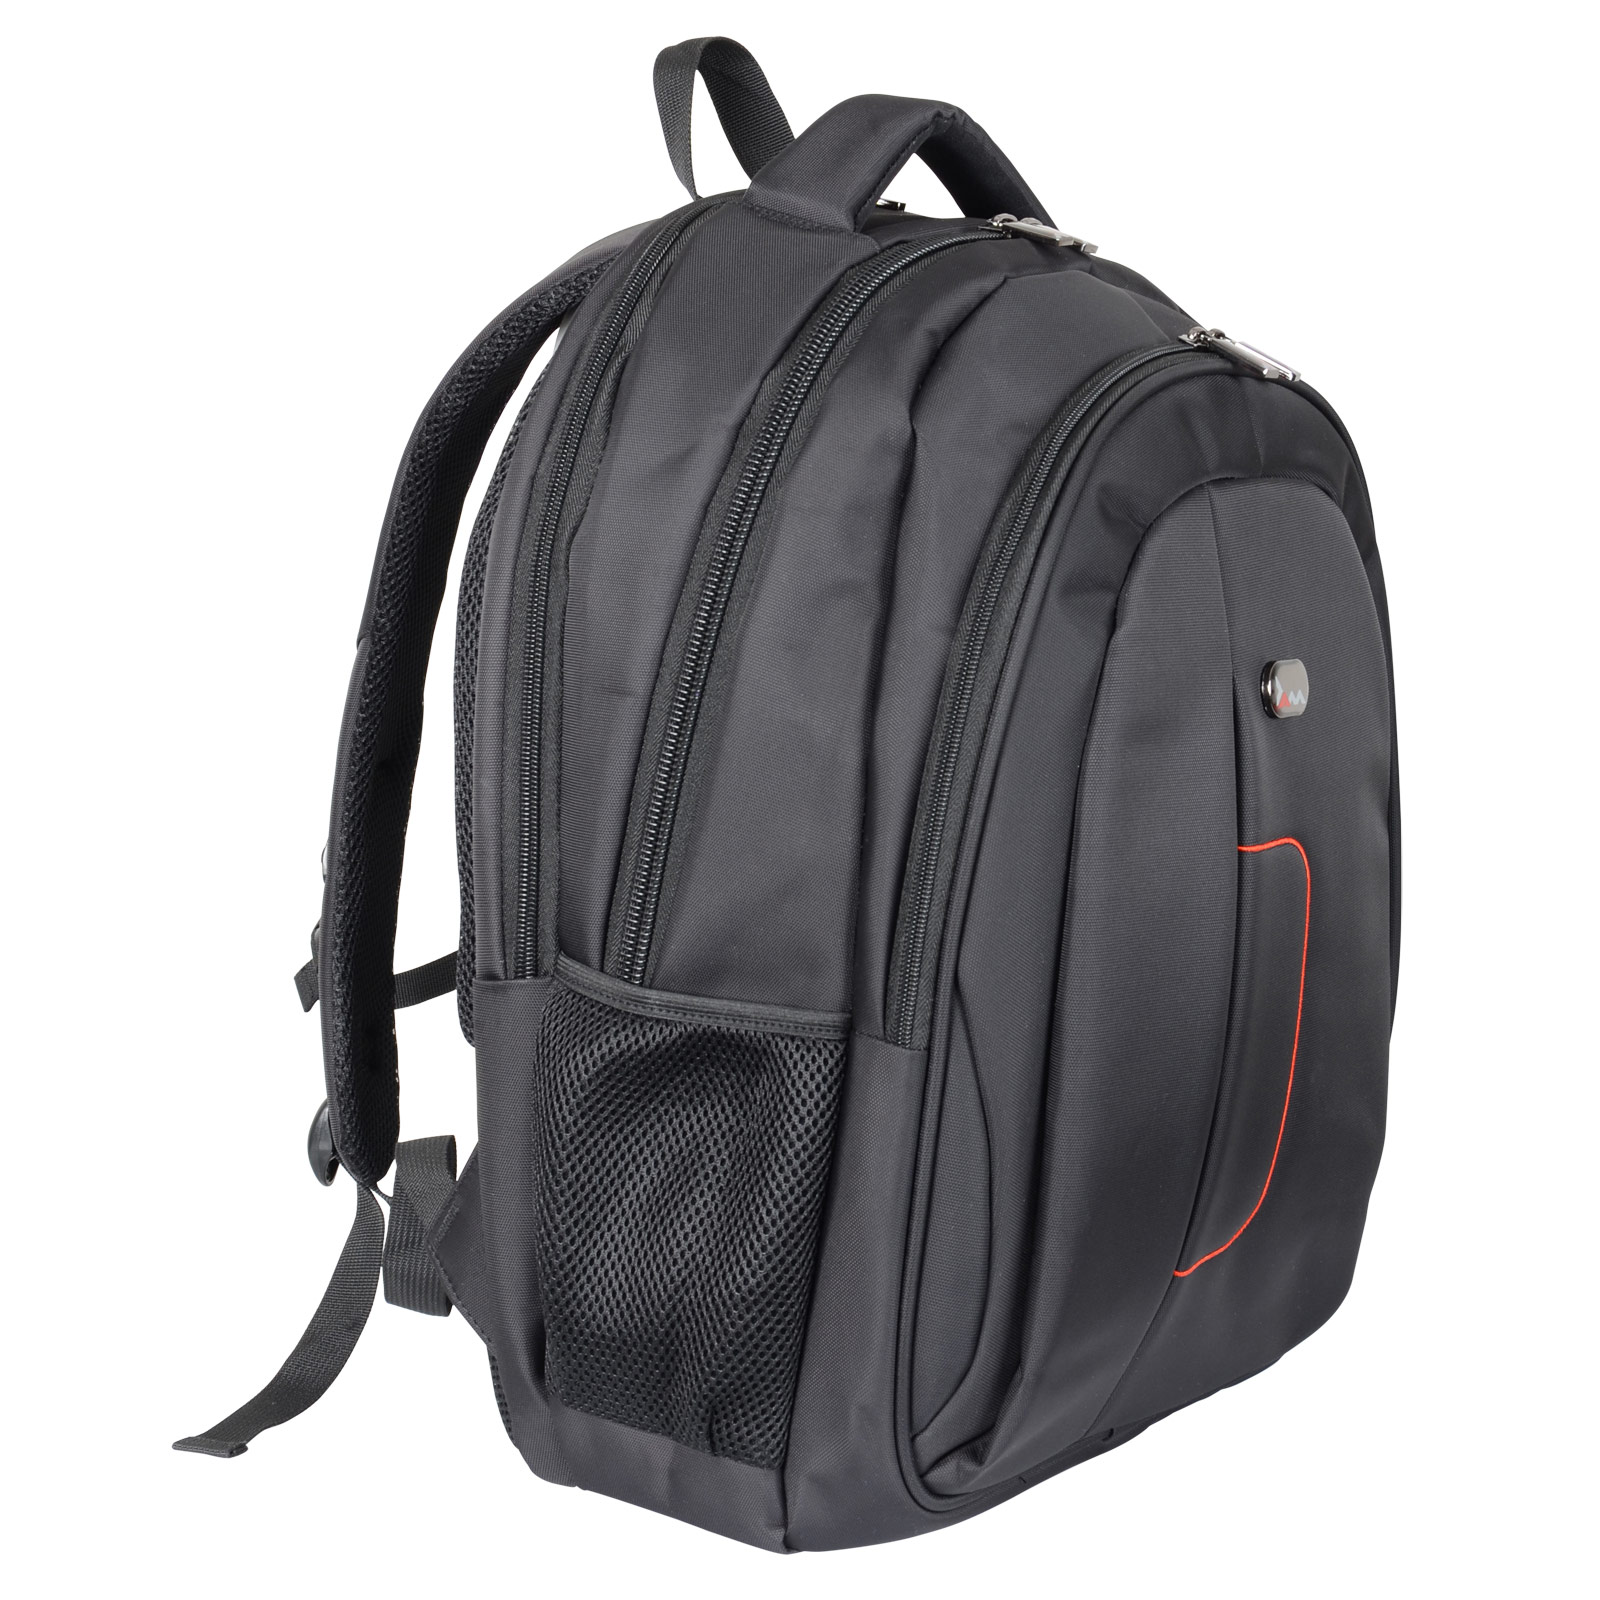 Sale Jam Business Laptop Backpack Rucksack Bag Travel